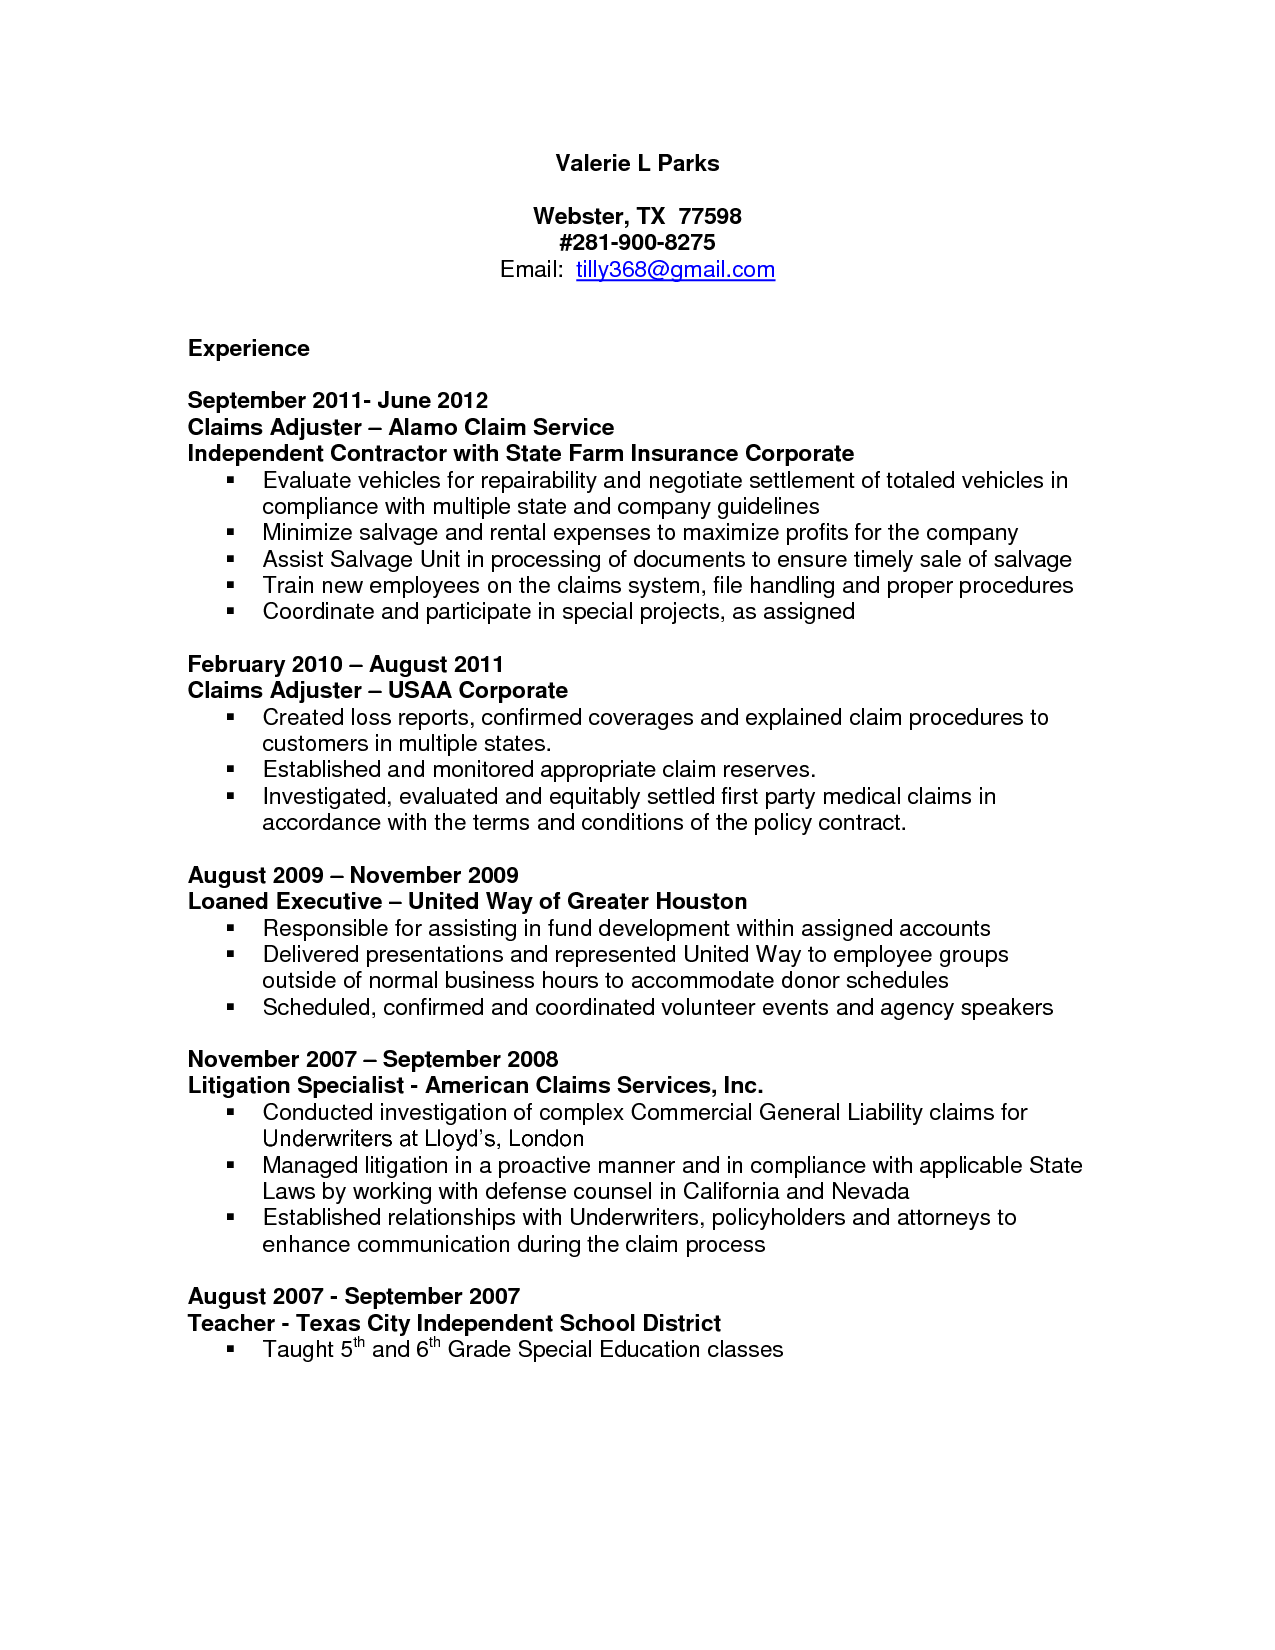 Claims Adjuster Resume Sample  HttpResumesdesignComClaims